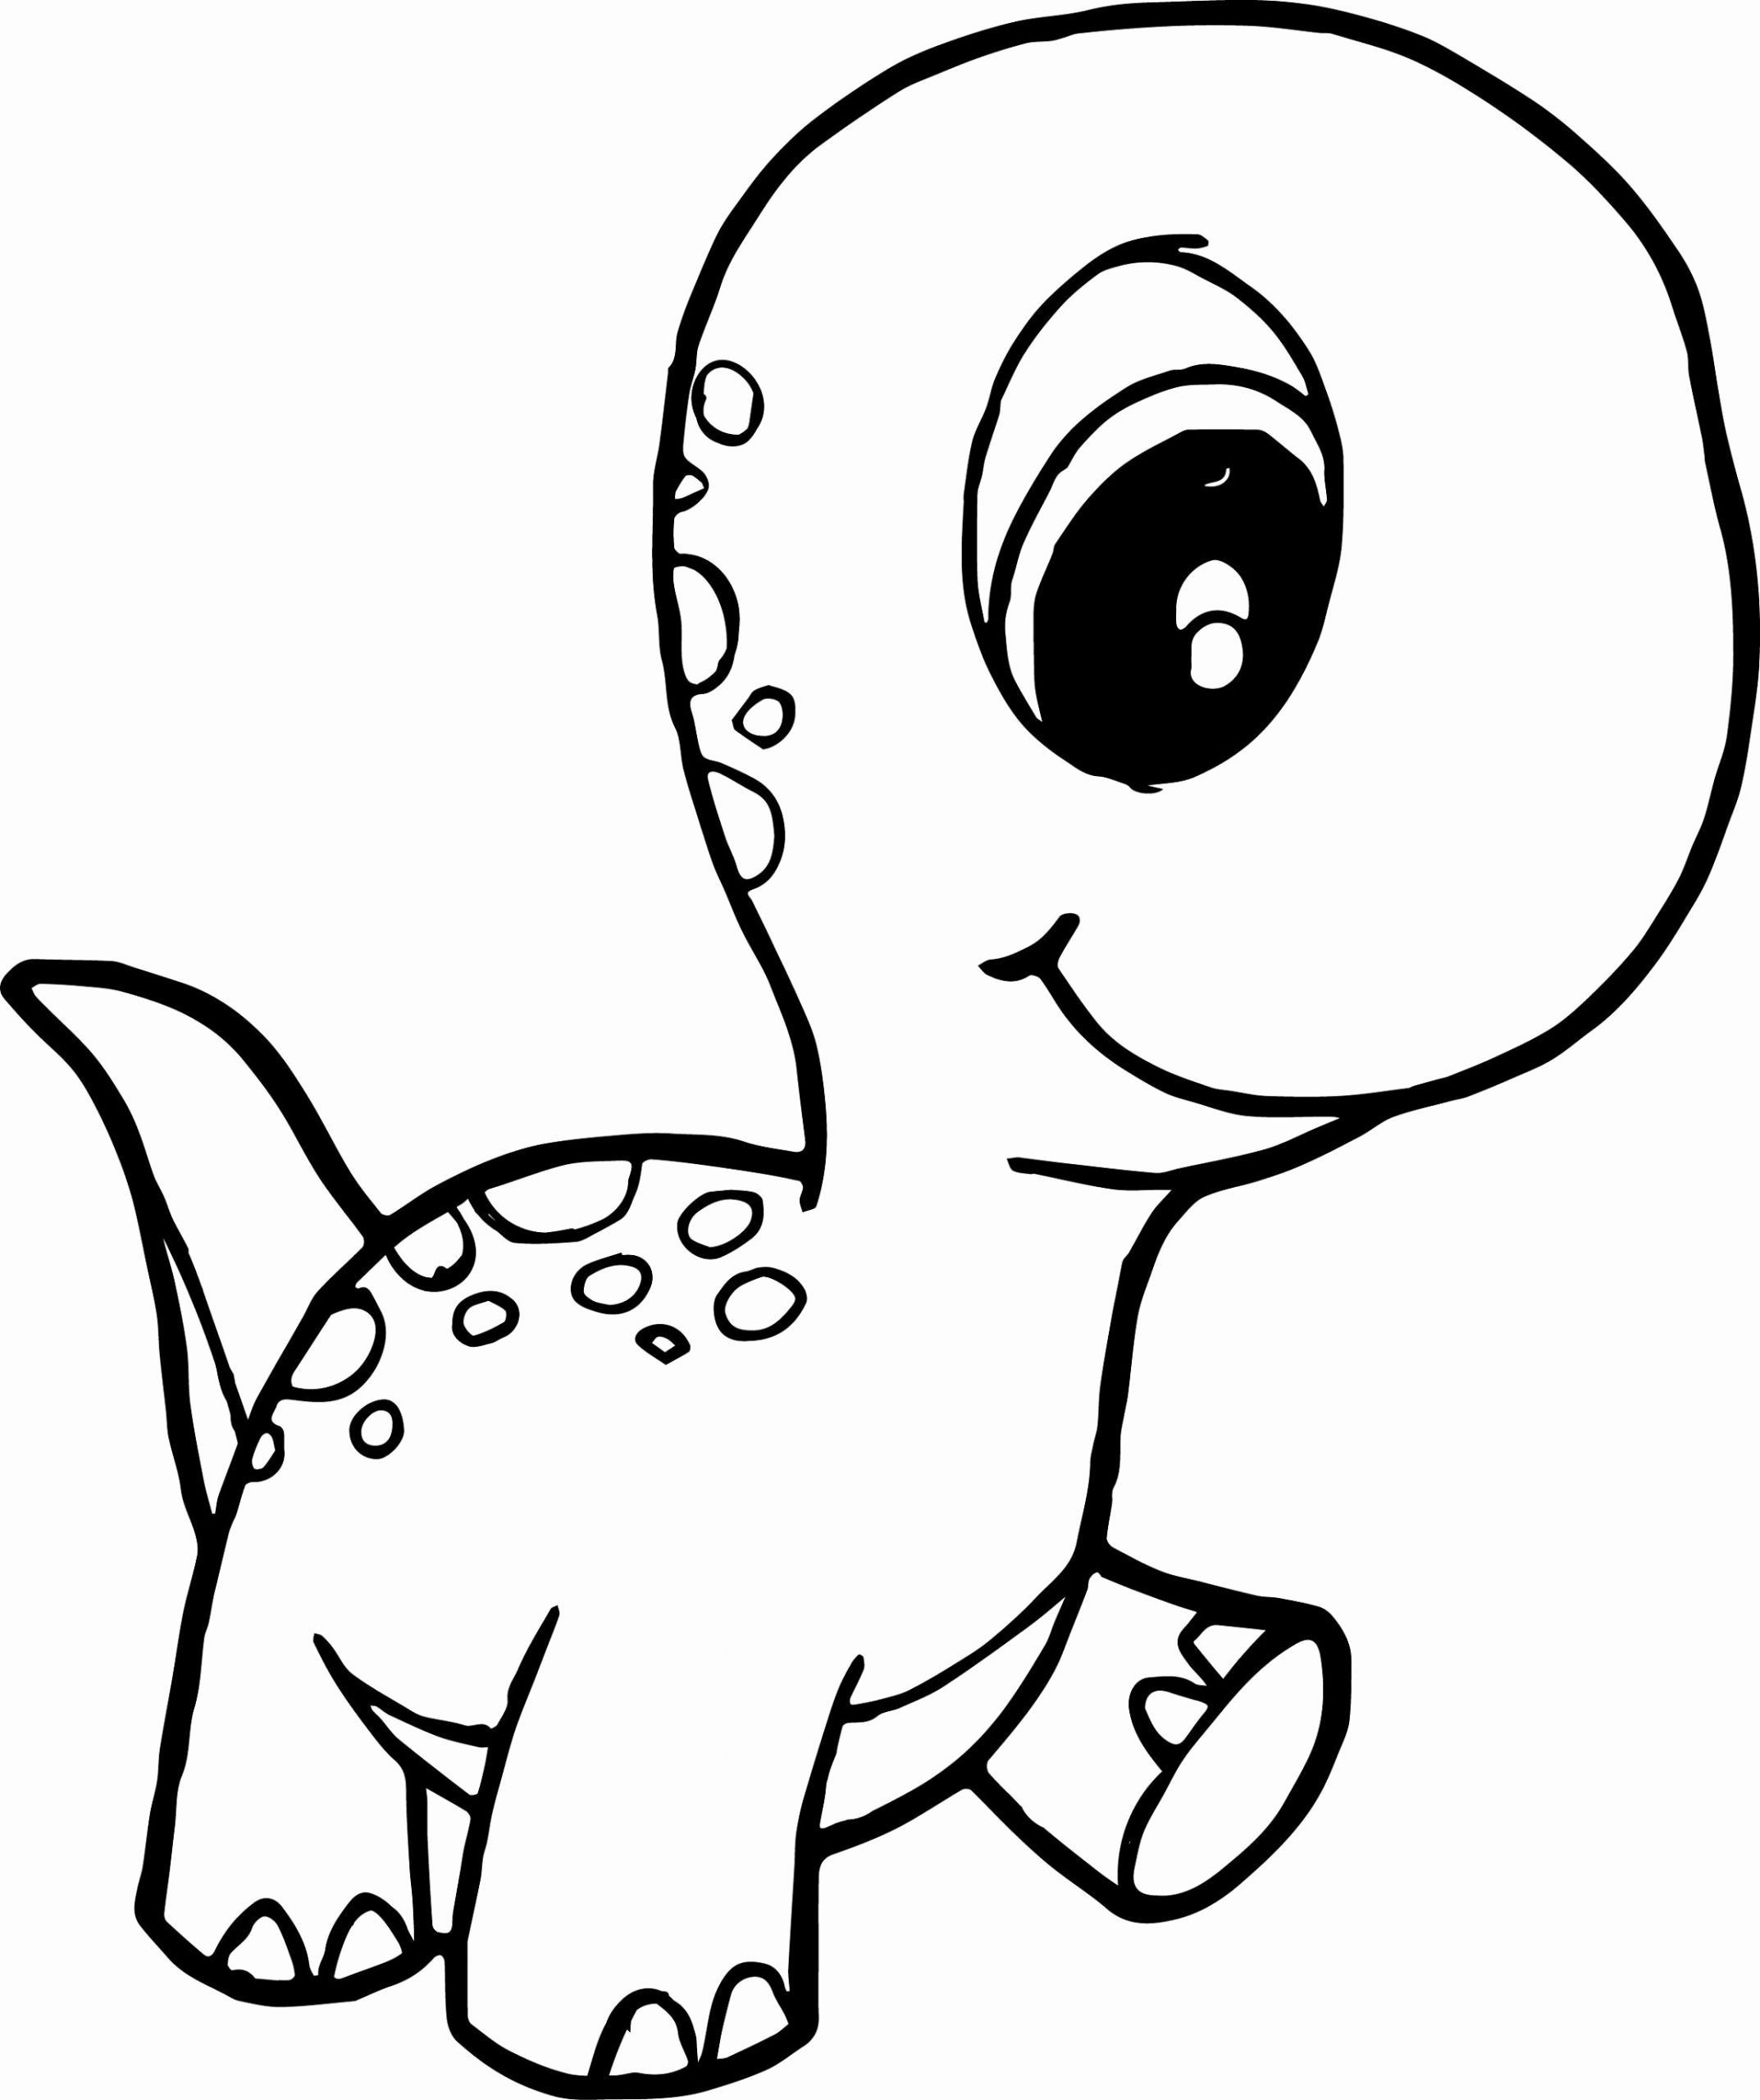 - Cute Baby Animal Coloring Pages In 2020 (With Images) Dinosaur